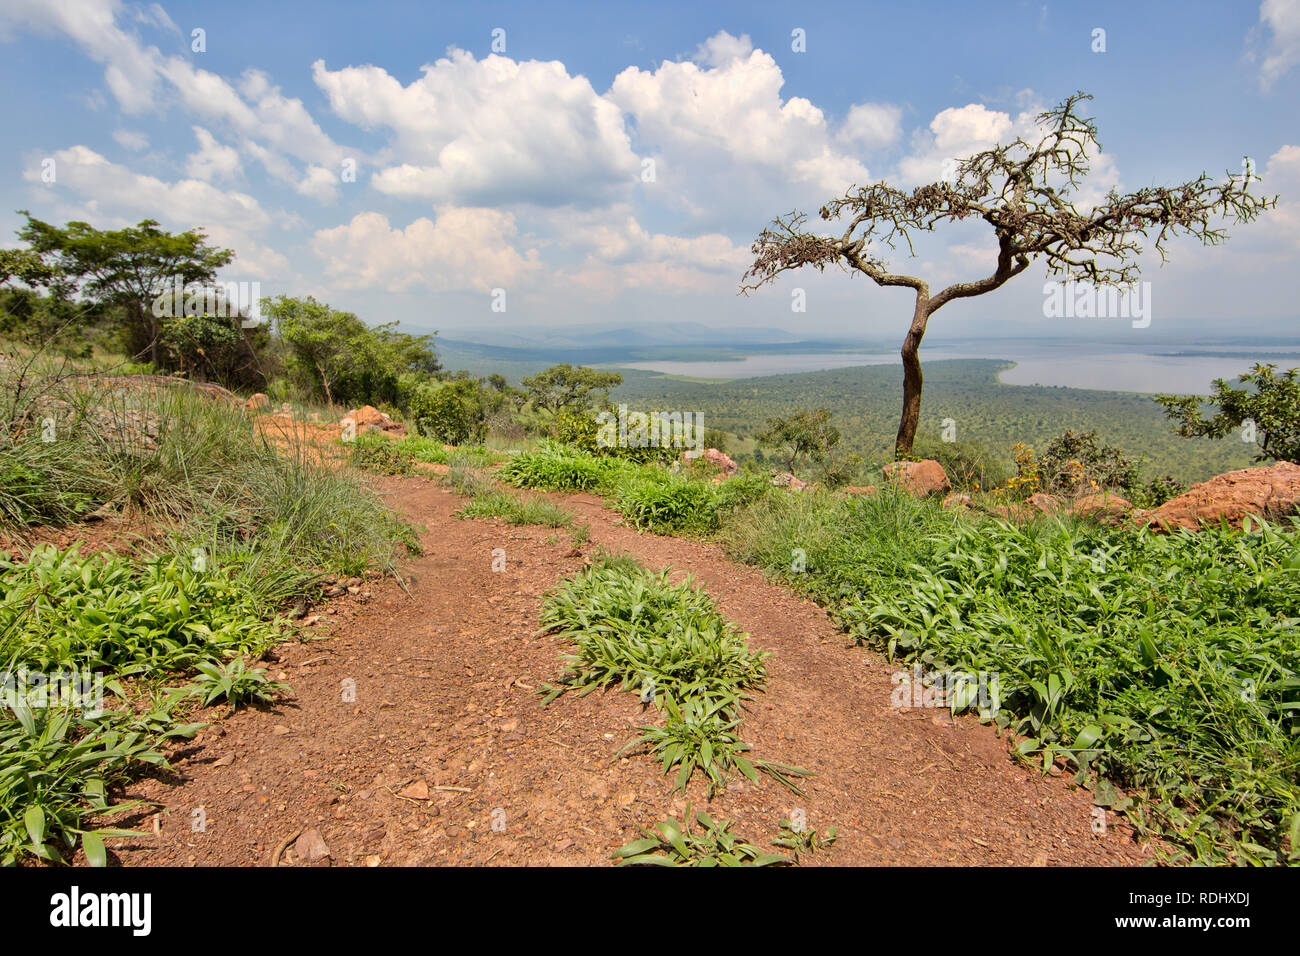 Akagera National Park, Parc National de l'Akagera, Eastern Province, Rwanda is a recovering conservation area. - Stock Image